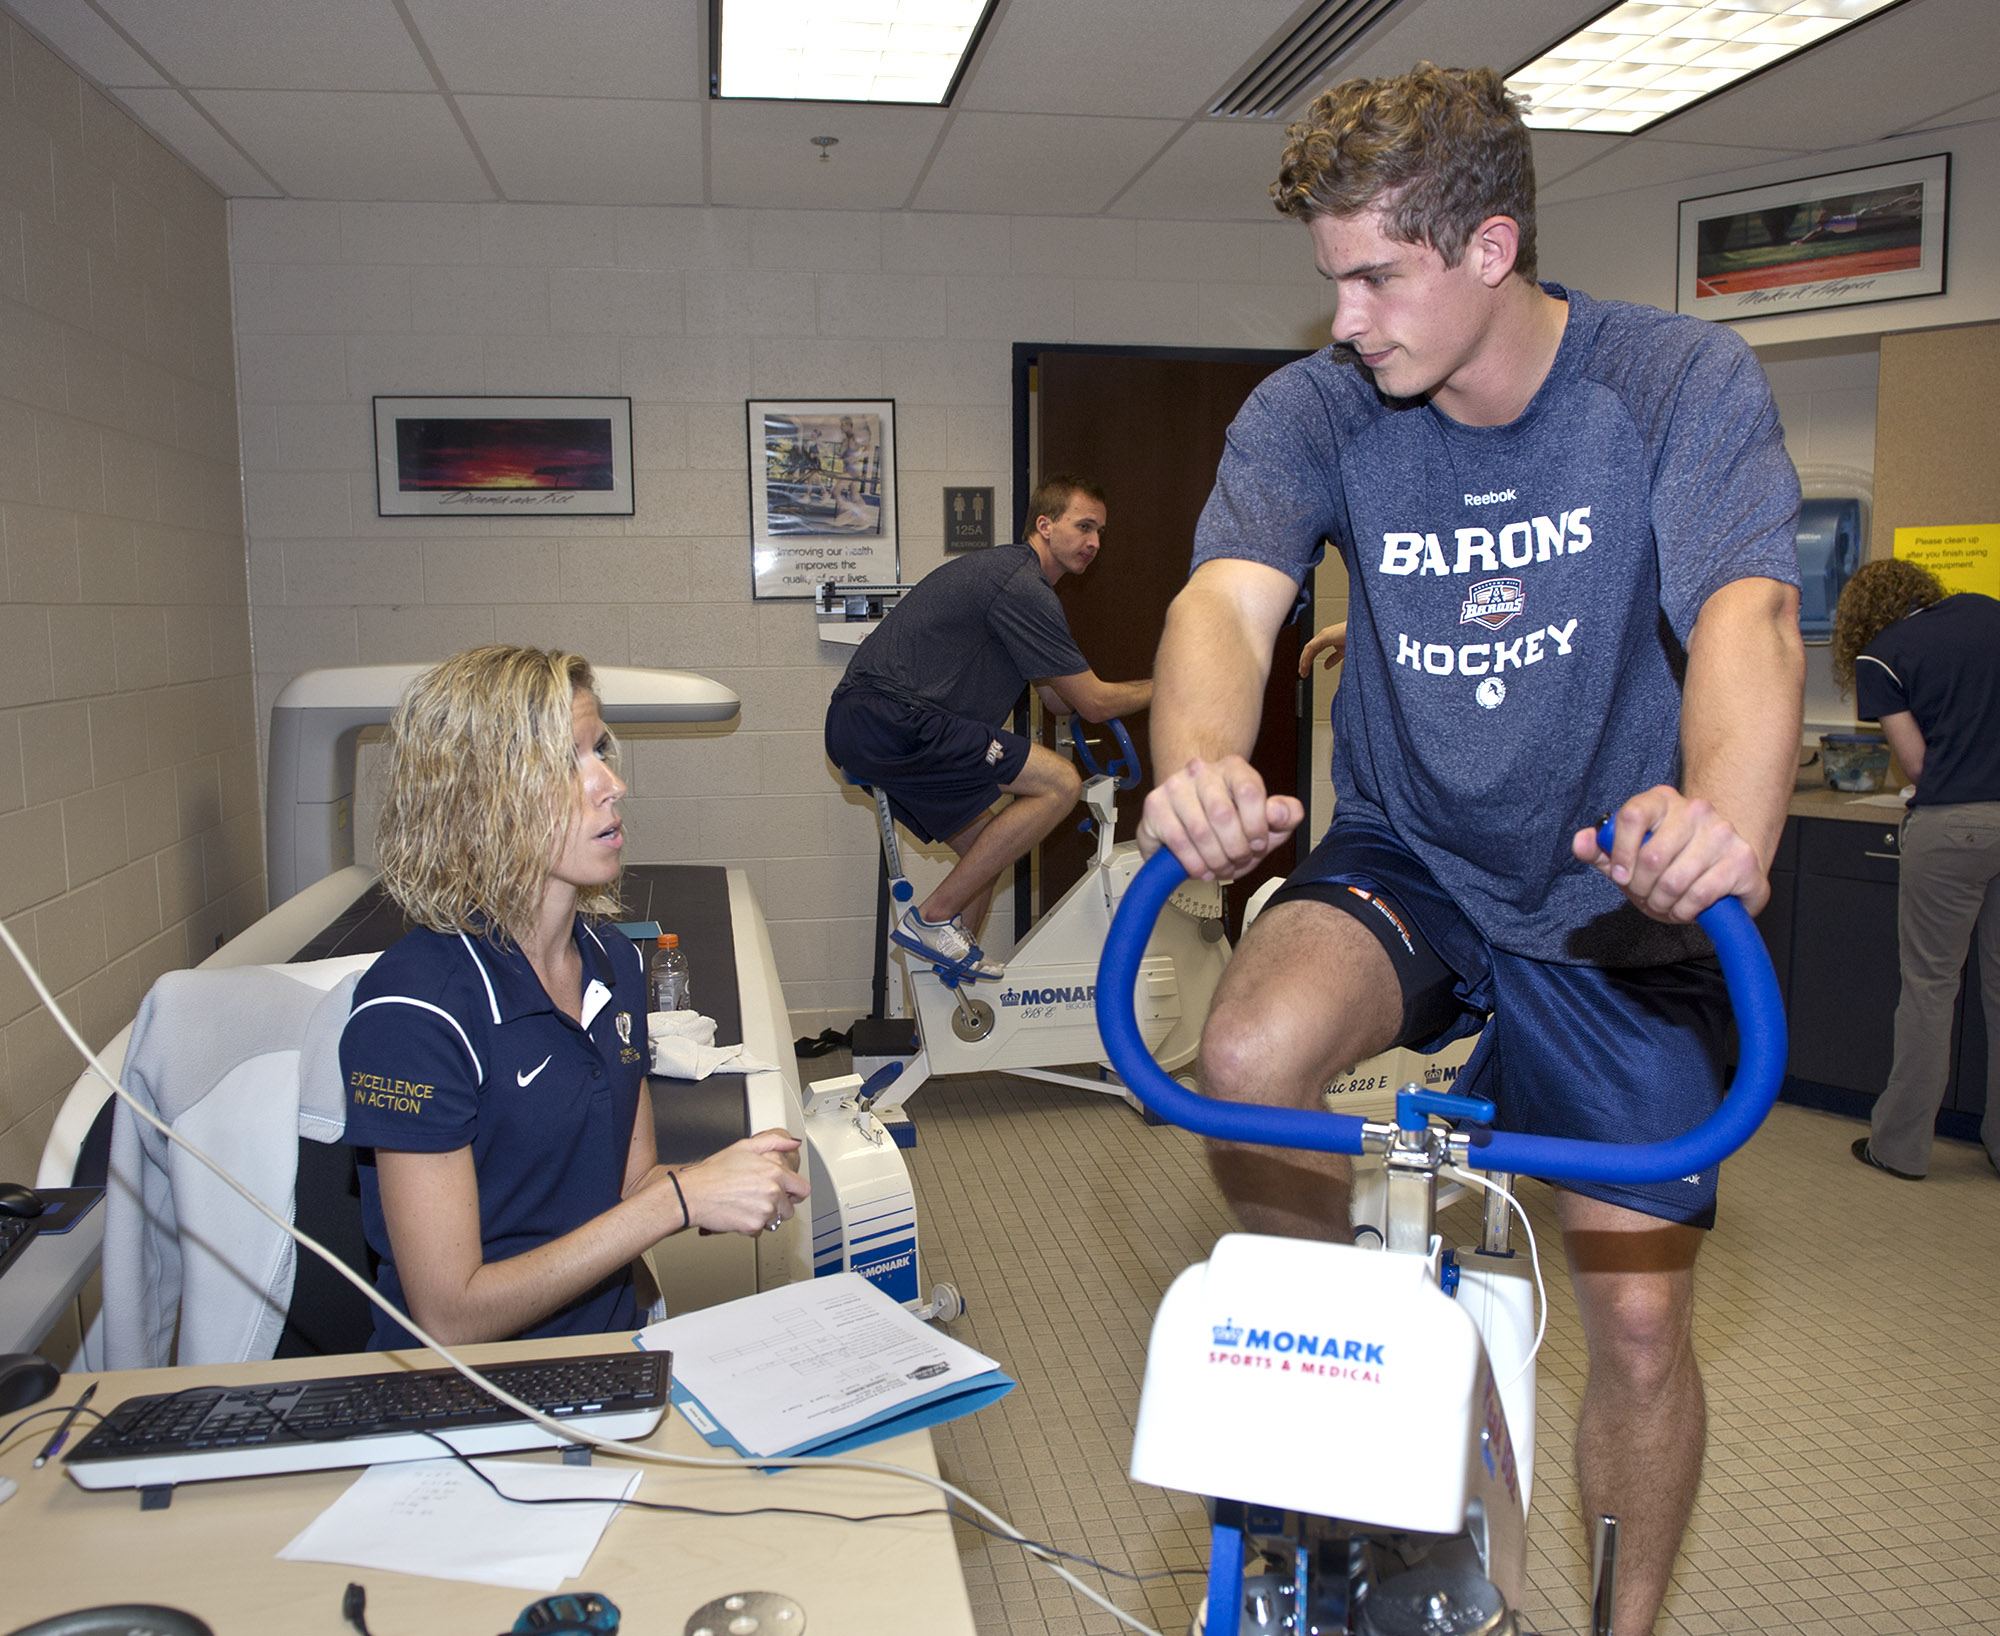 Kristin Bogda, a student in the University of Central Oklahoma Department of Kinesiology and Health Studies, administers a health screening for a Oklahoma City Barons hockey player.